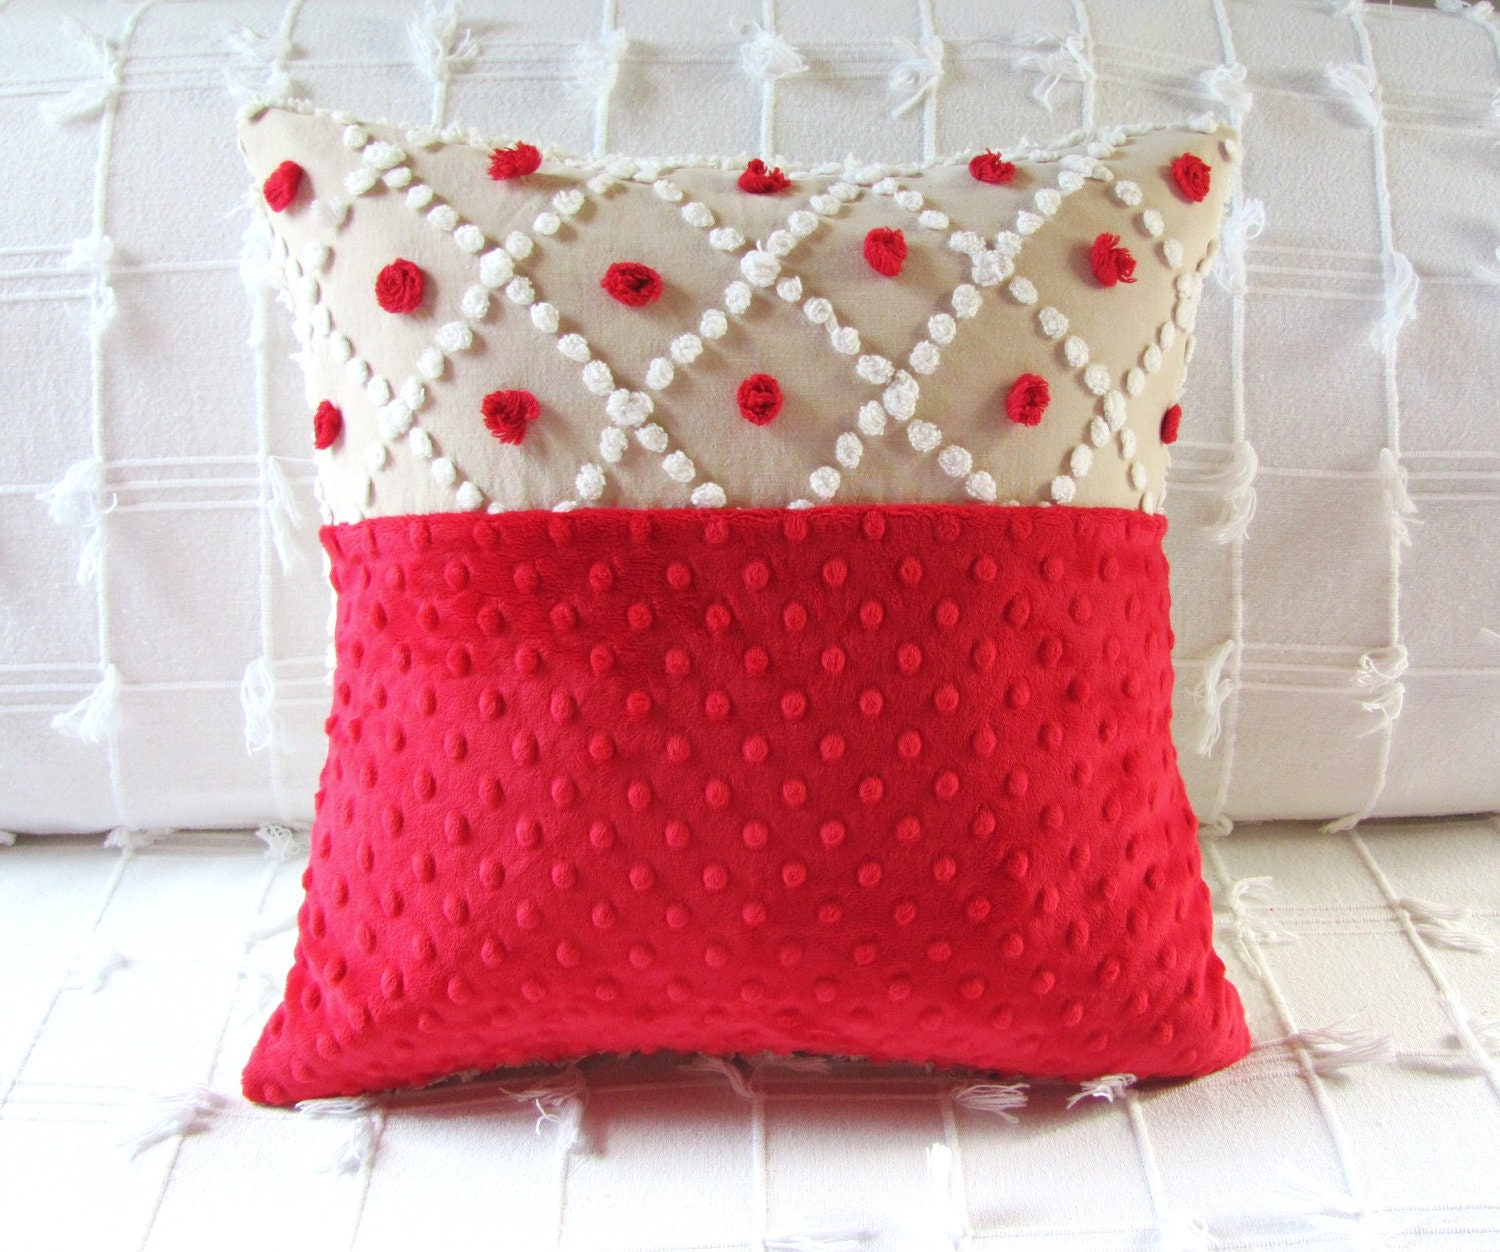 Stunning Pillow Designs Ideas Pictures Home Design Ideas